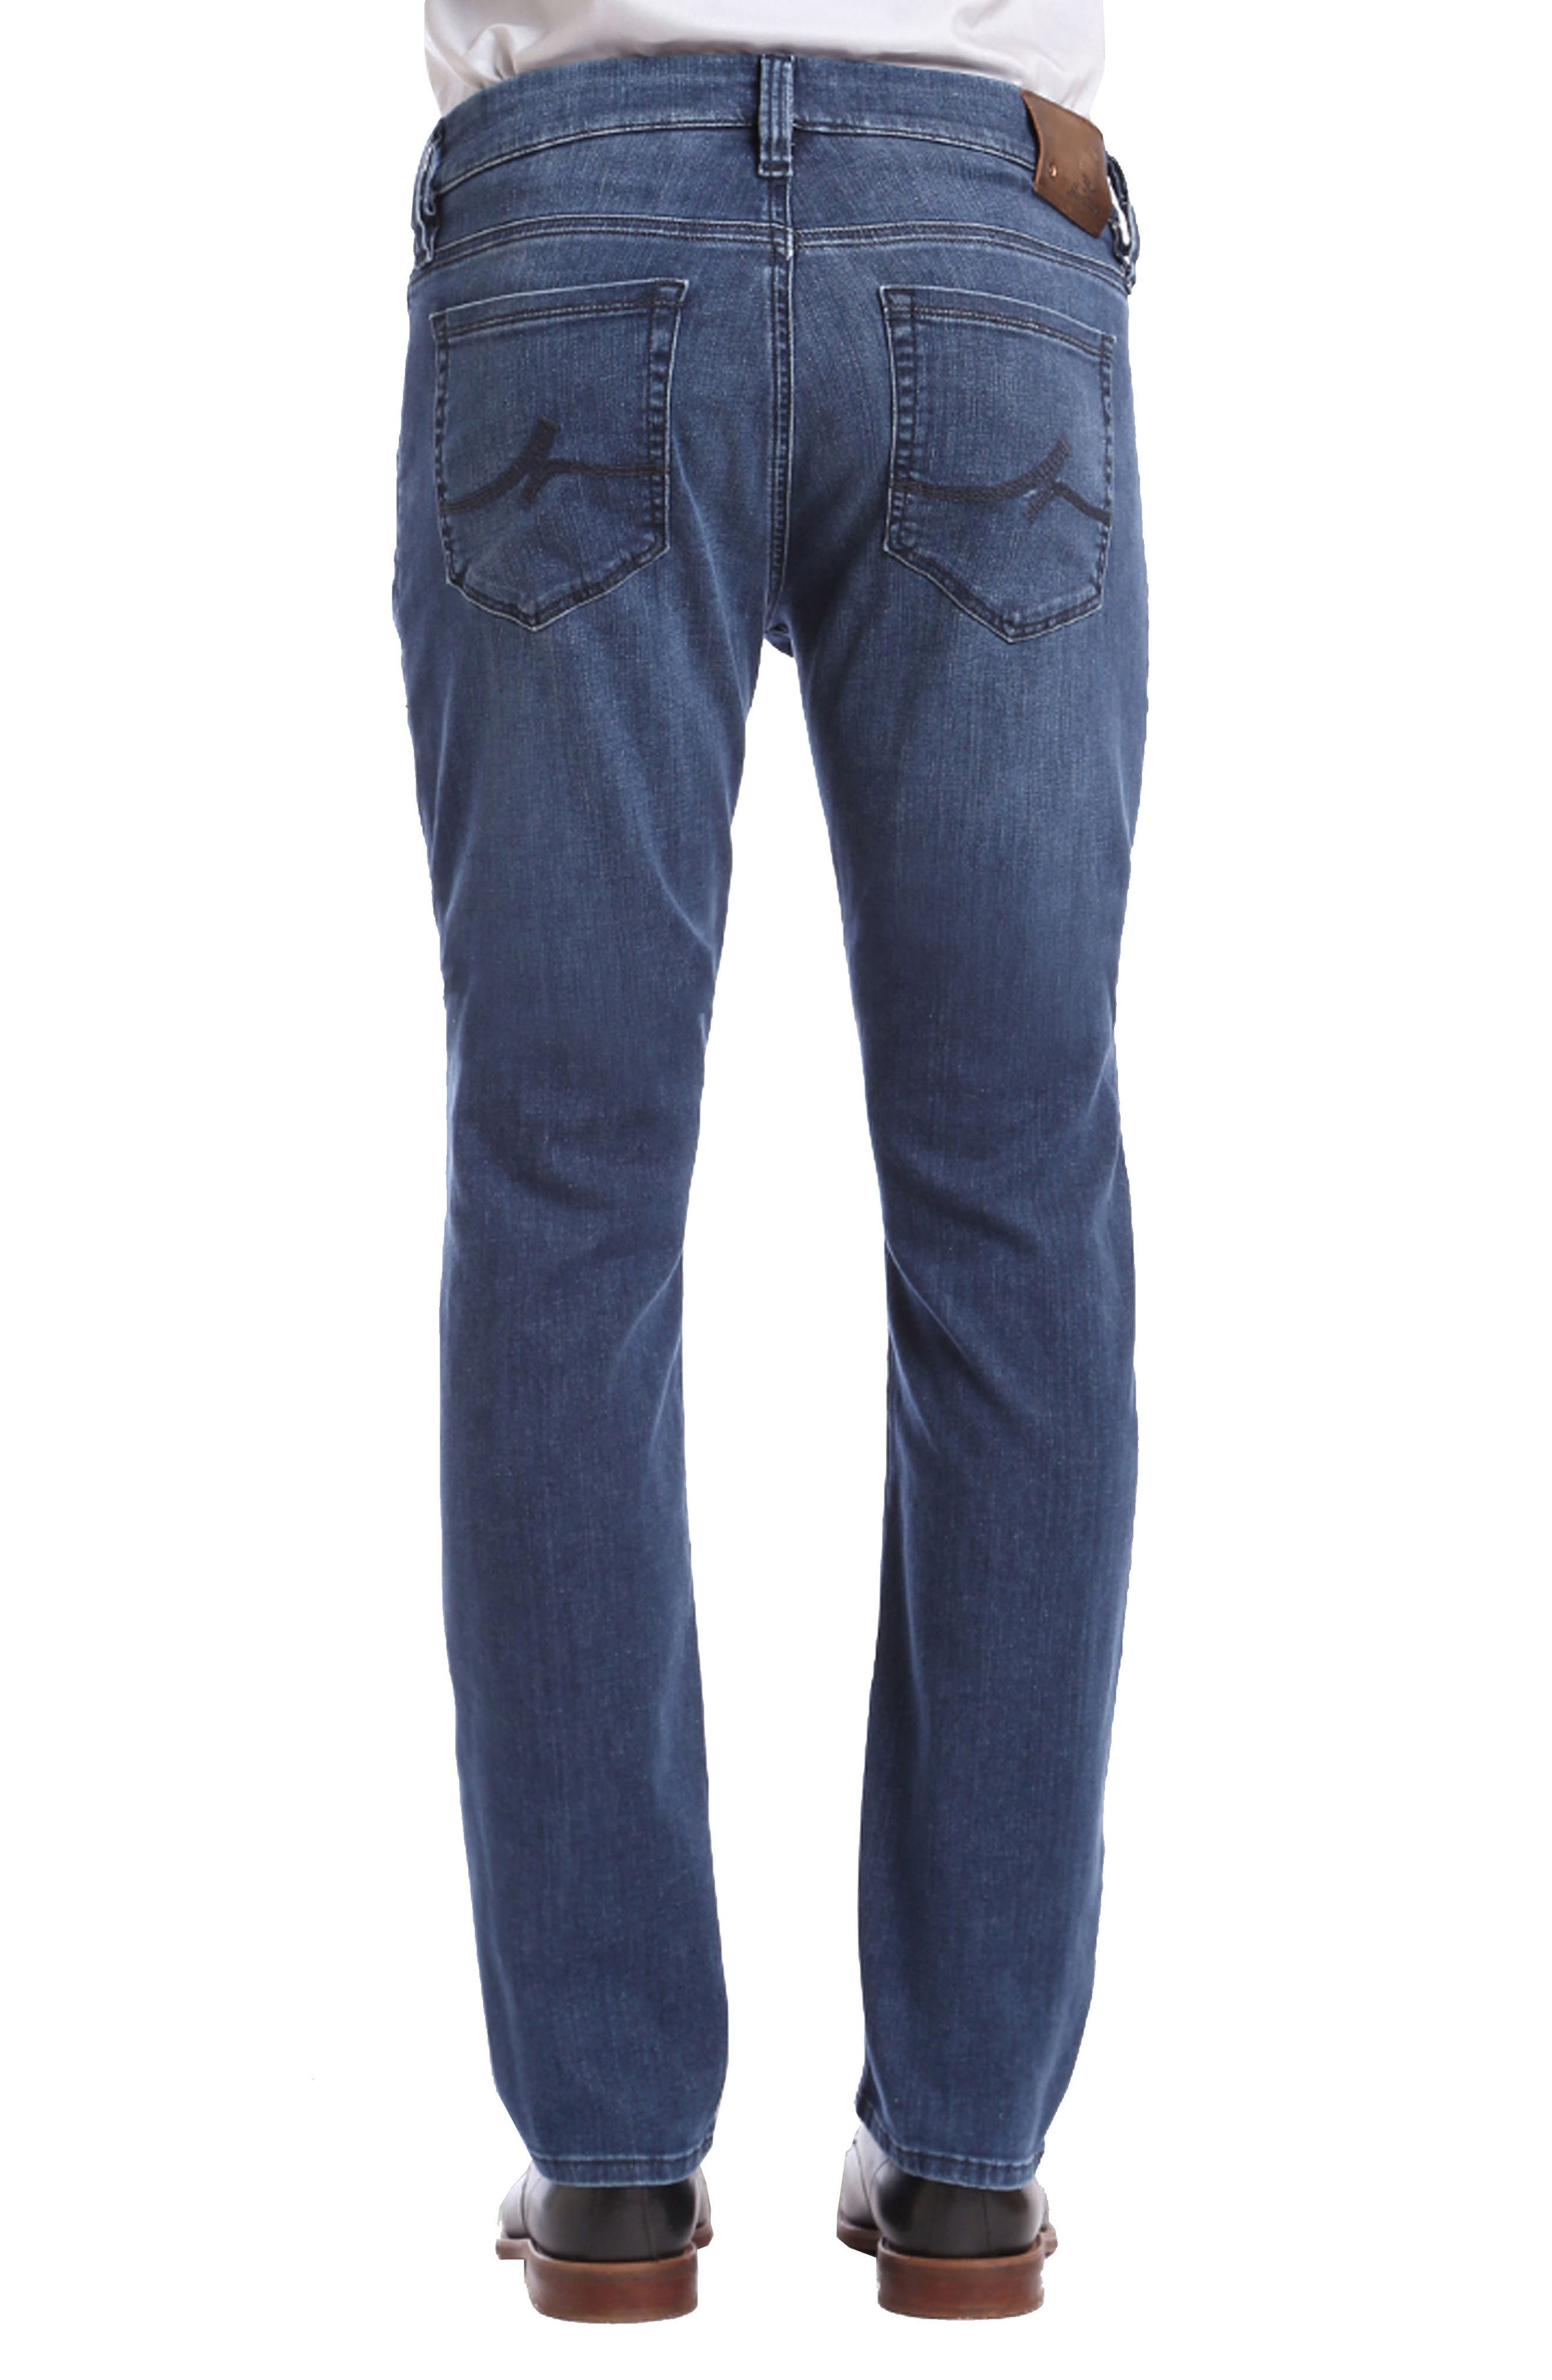 Courage Straight Fit Jeans,                             Alternate thumbnail 2, color,                             Mid Milan